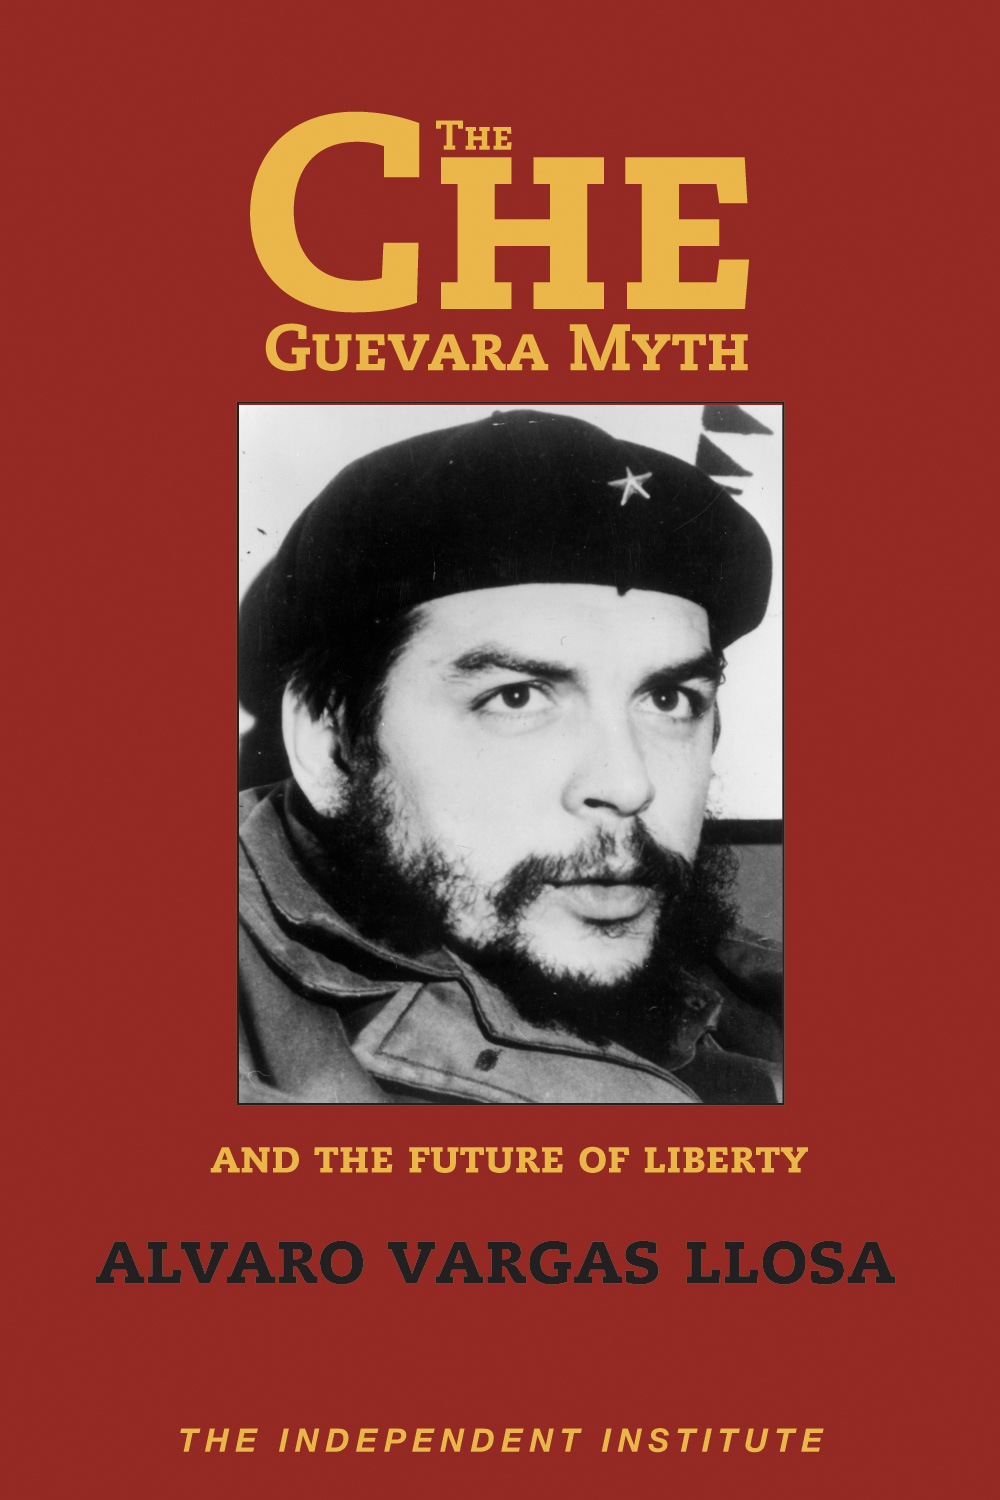 http://www.independent.org/images/books-hires/che_1000.jpg